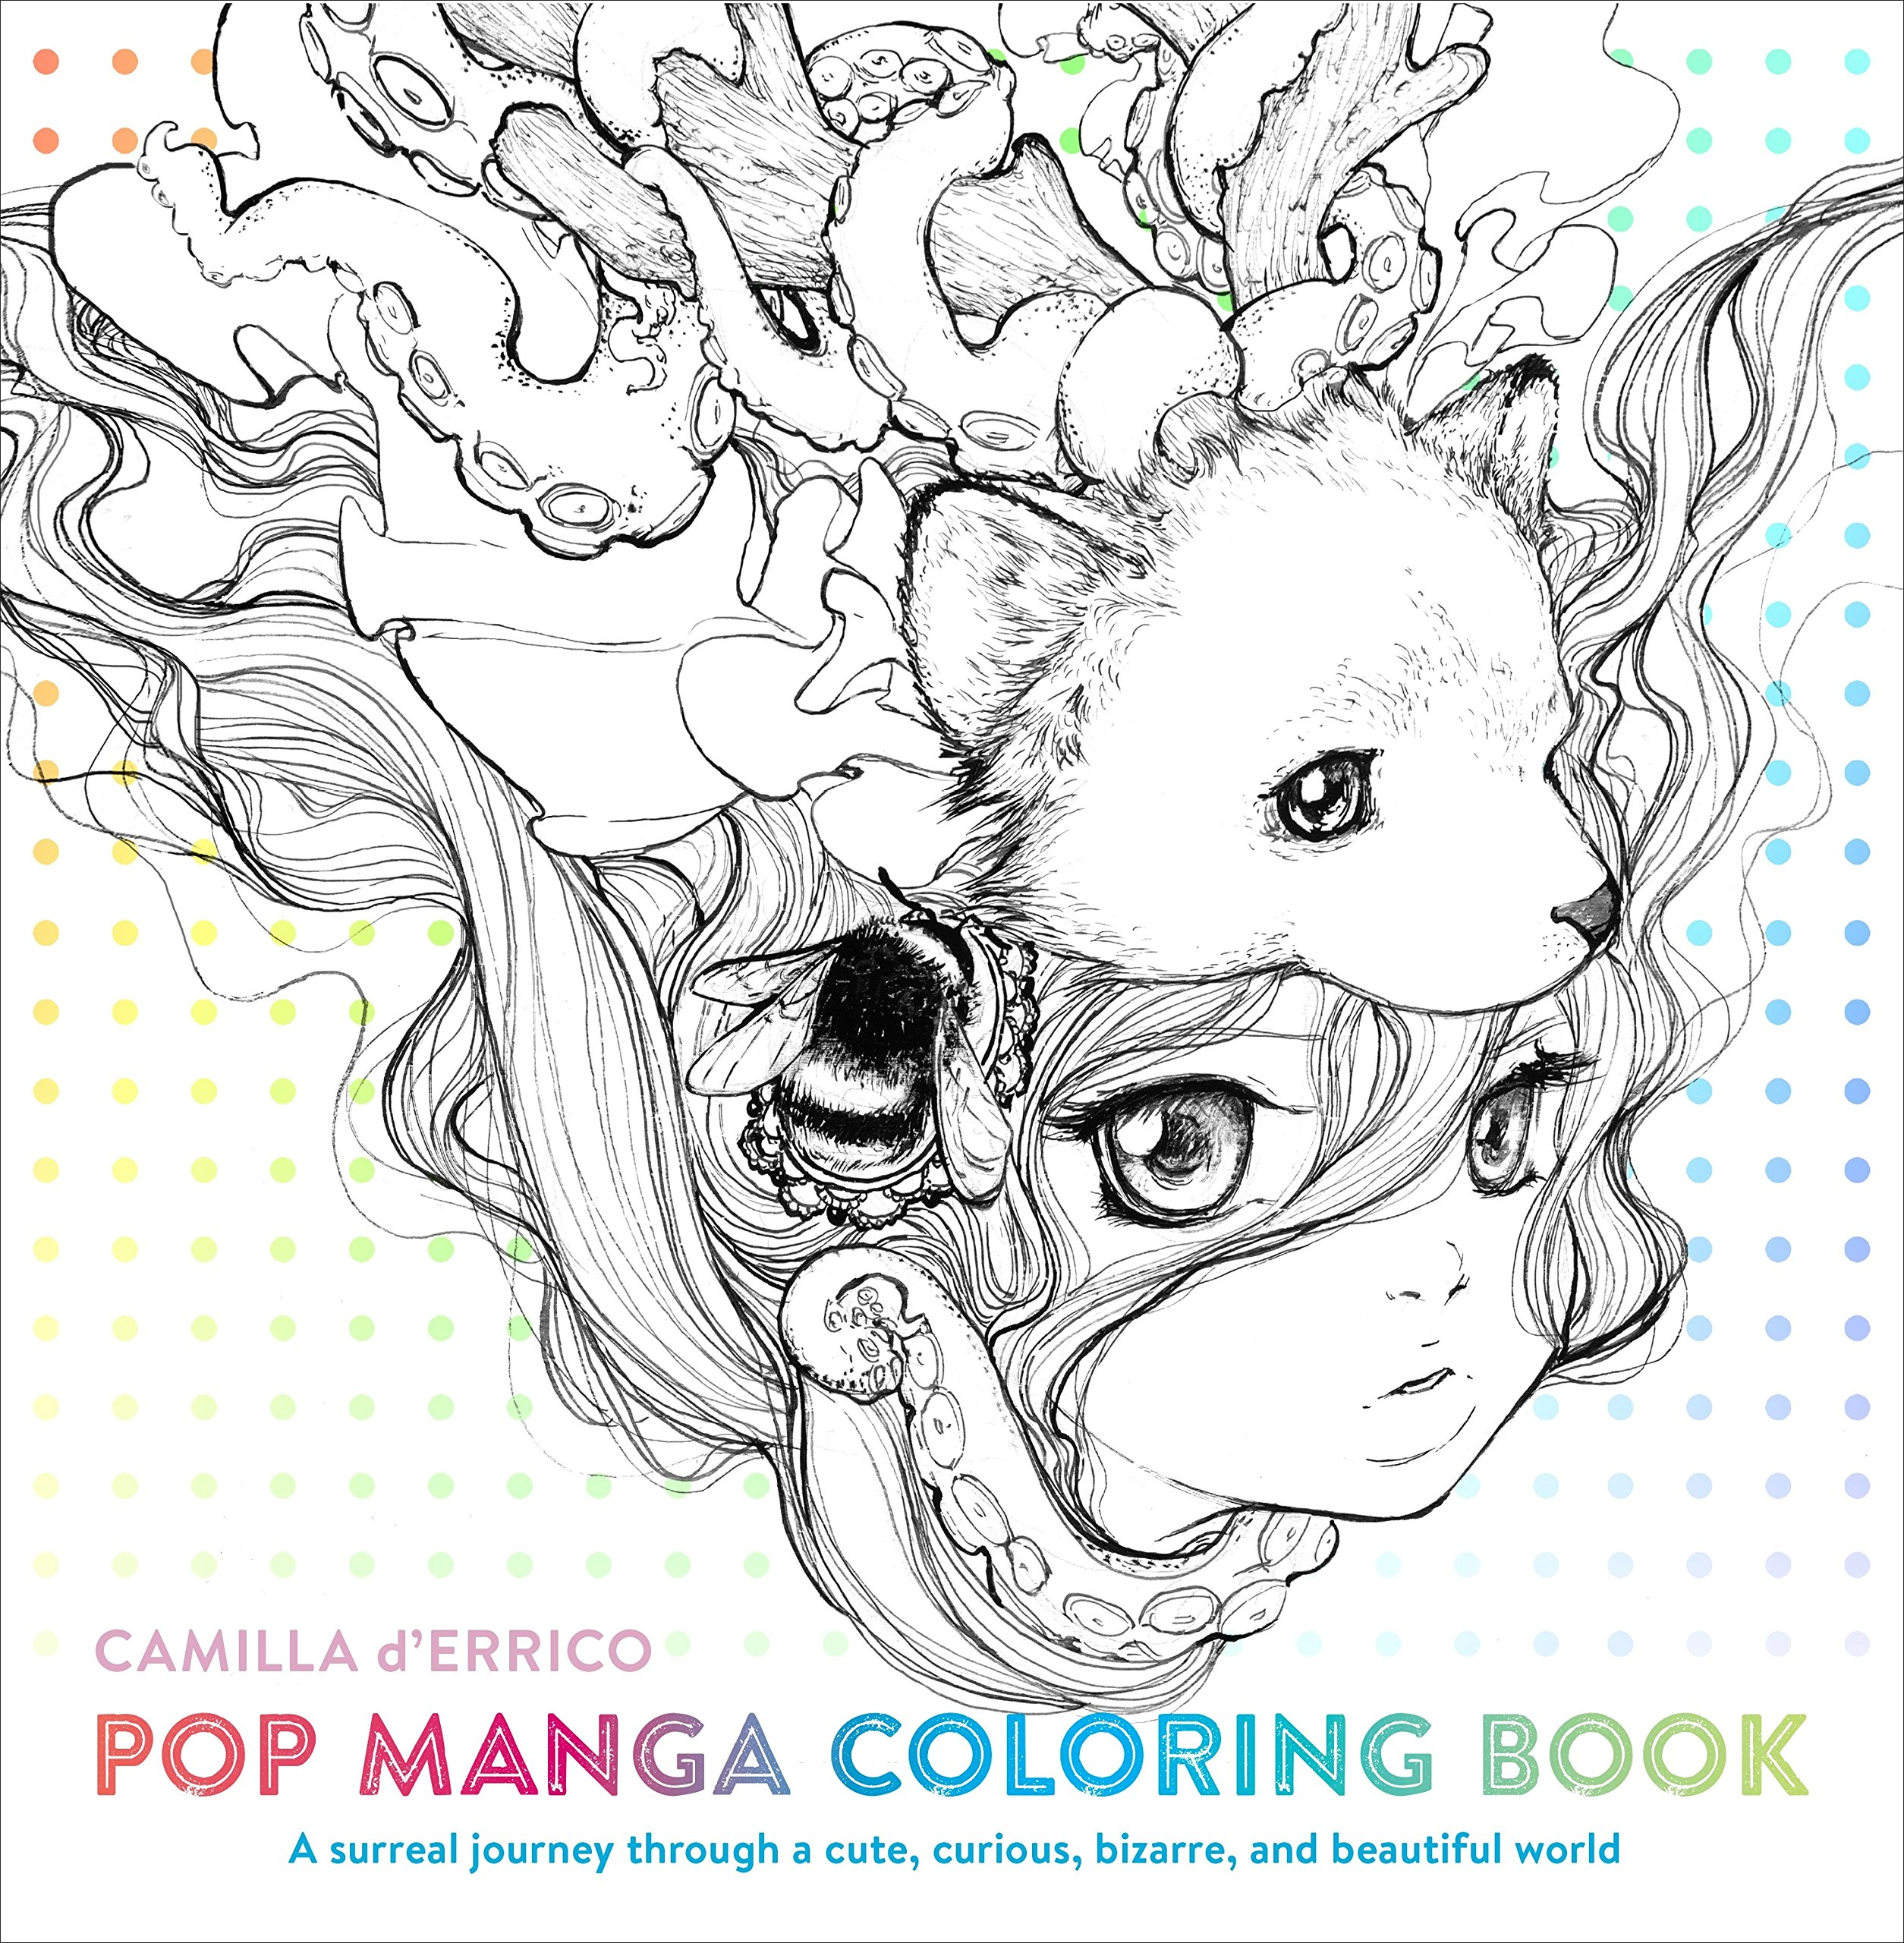 Amazoncom Pop Manga Coloring Book A Surreal Journey Through a